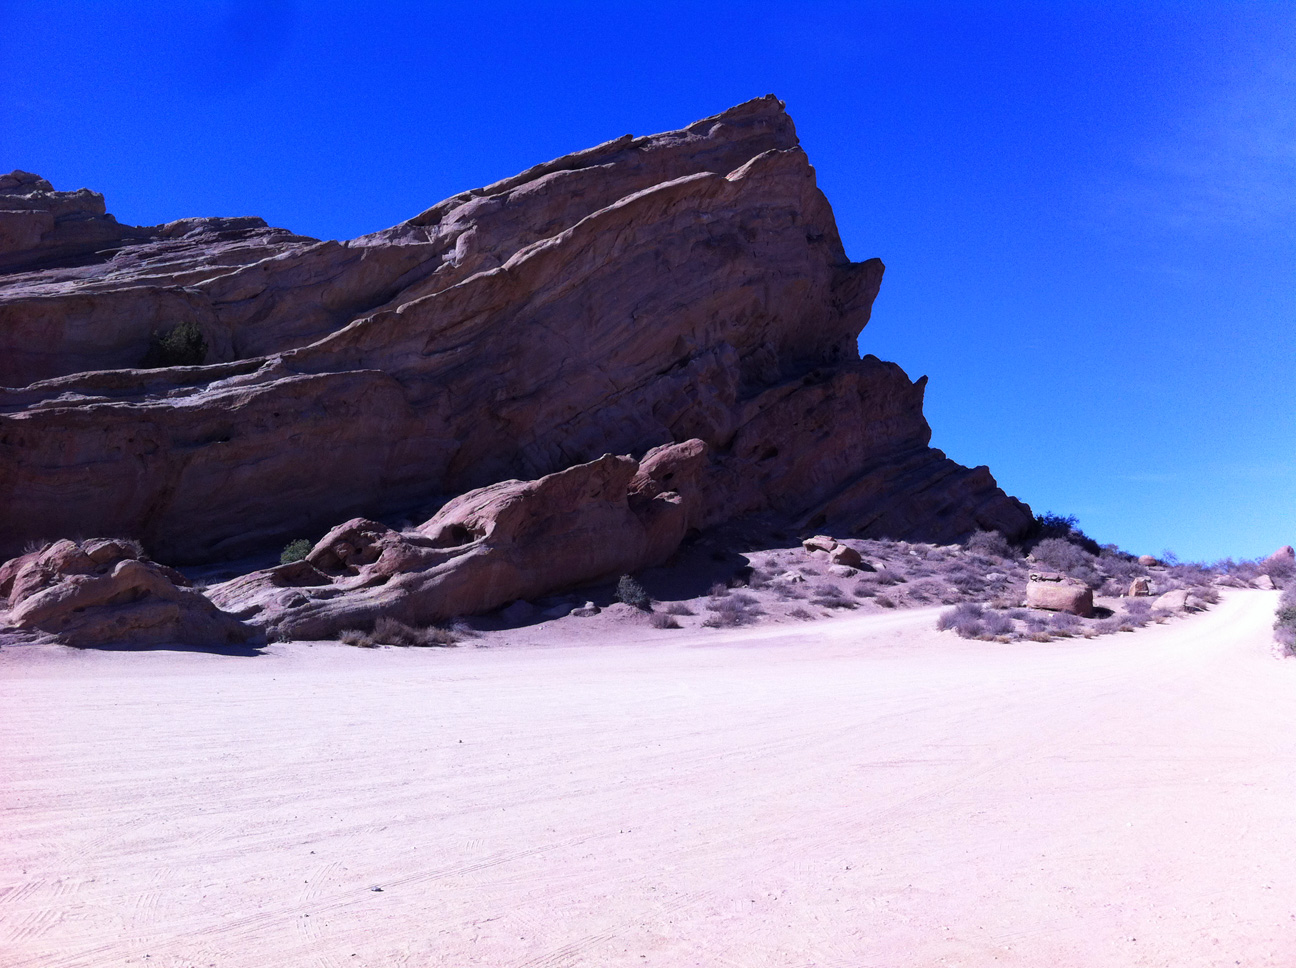 Agua Dulce, camping, day trips, day trips from Los Angeles, Desert, hiking, picnics, Rock Climbing, Santa Clarita, Southern California Hiking, Travel, Vasquez Rocks, Westerns